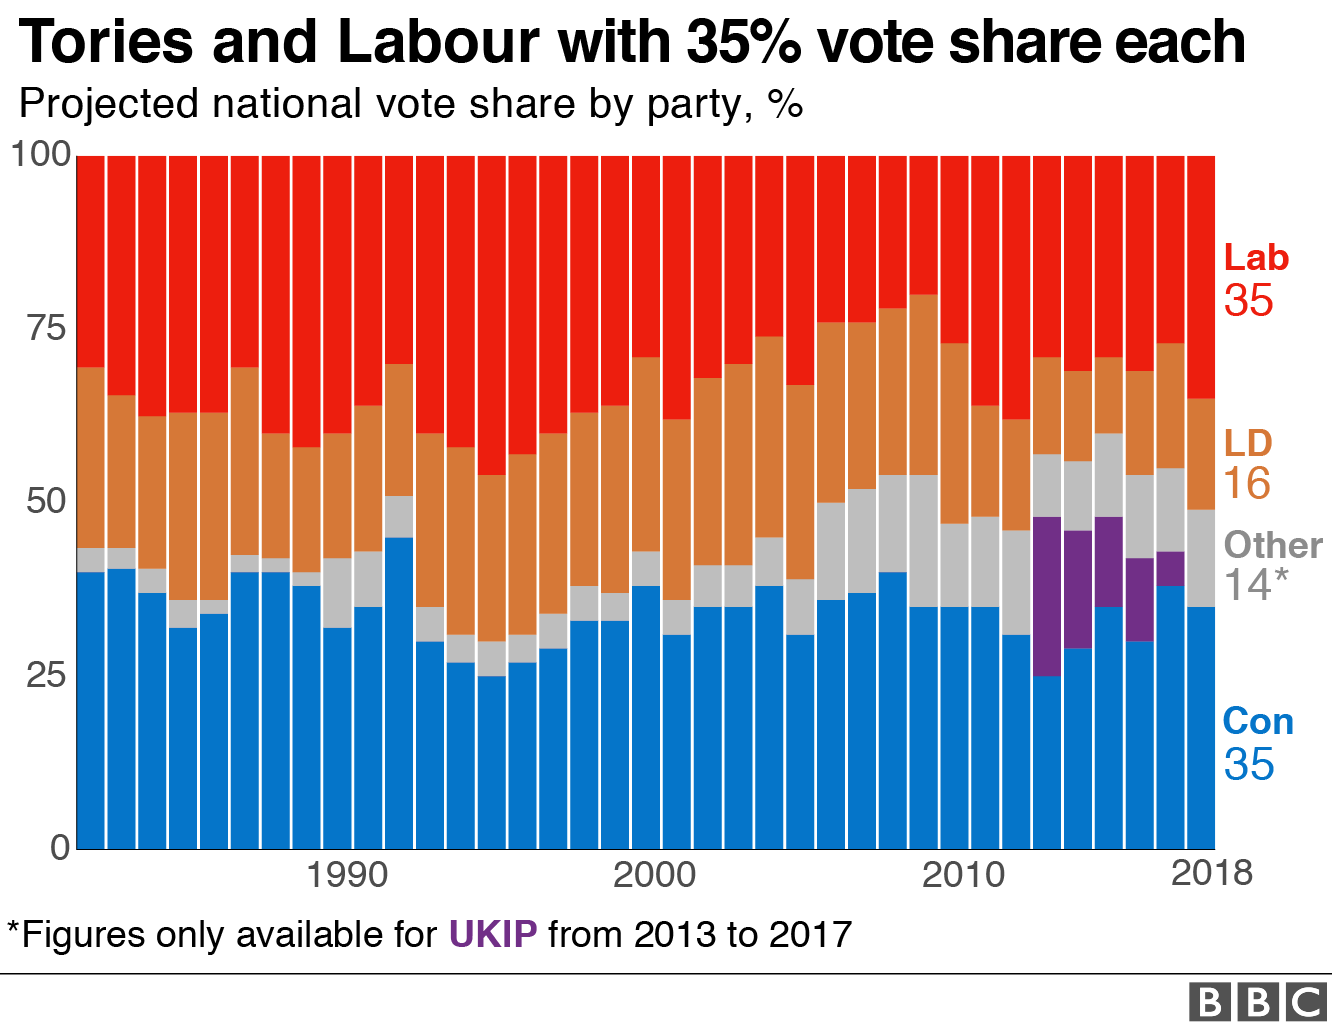 Chart showing projected vote share for Tories and Labour